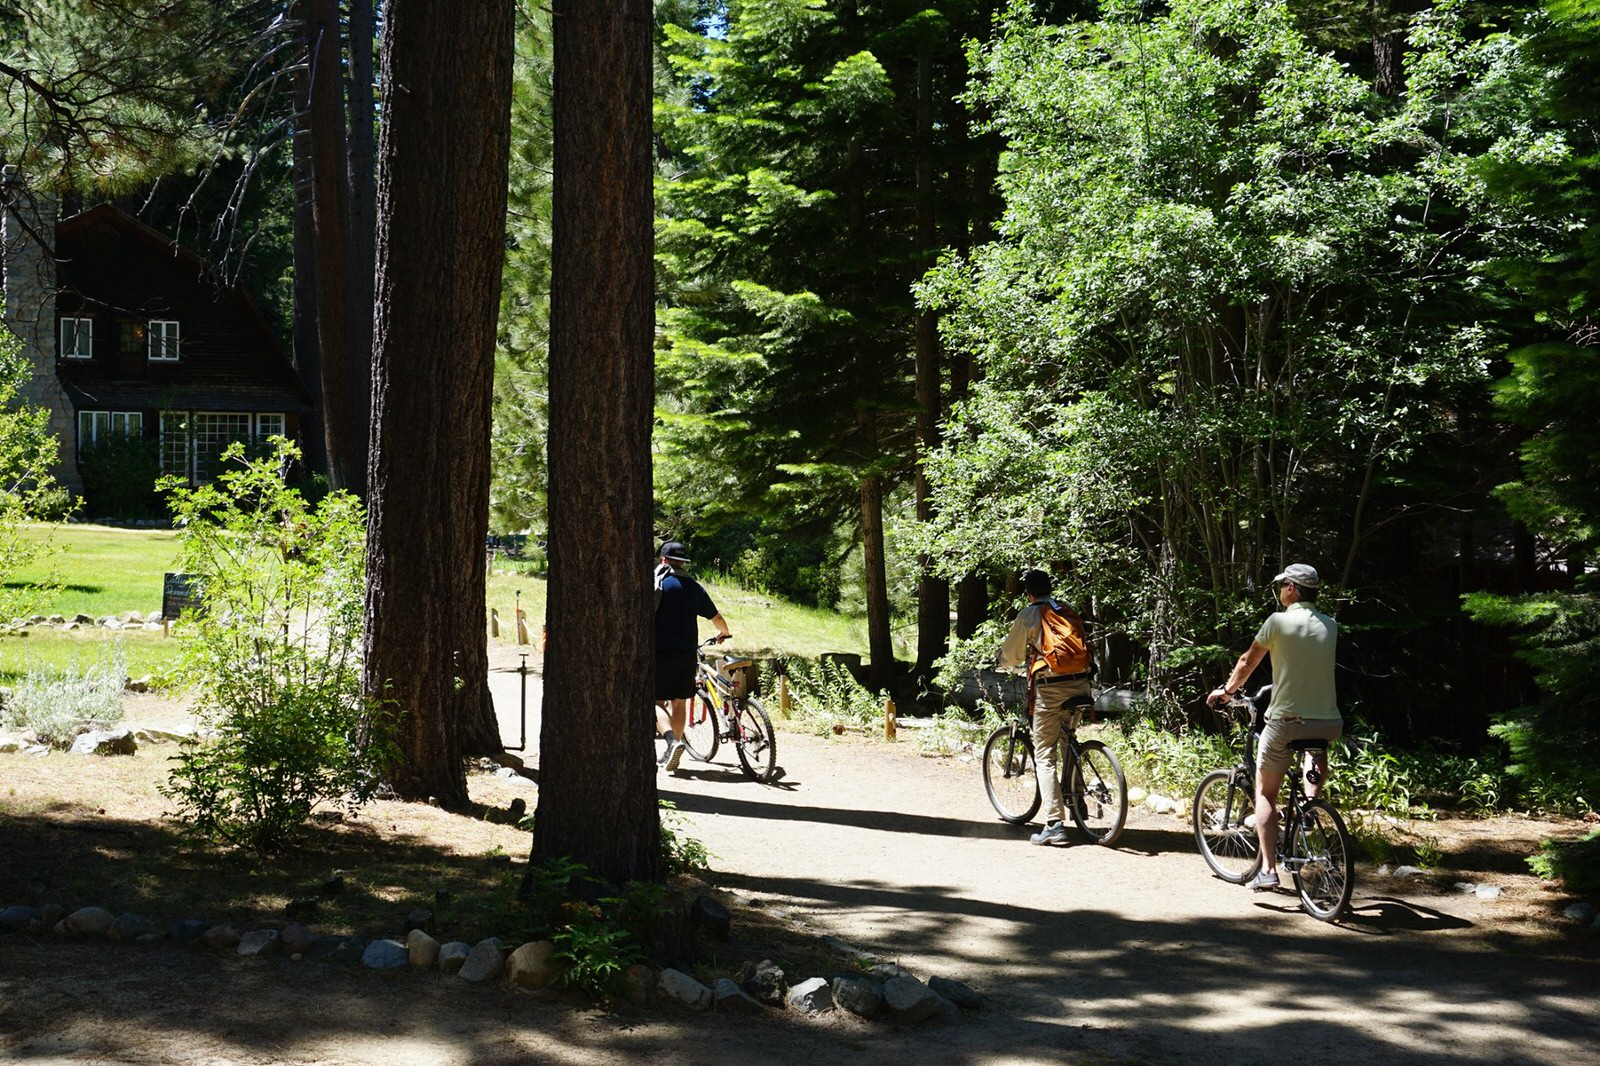 photo: Cyclists visit the USFS's Tallac Historic Site, Emerald Bay Road, South Lake Tahoe. Photo by Tahoe Heritage Foundation, Sou.